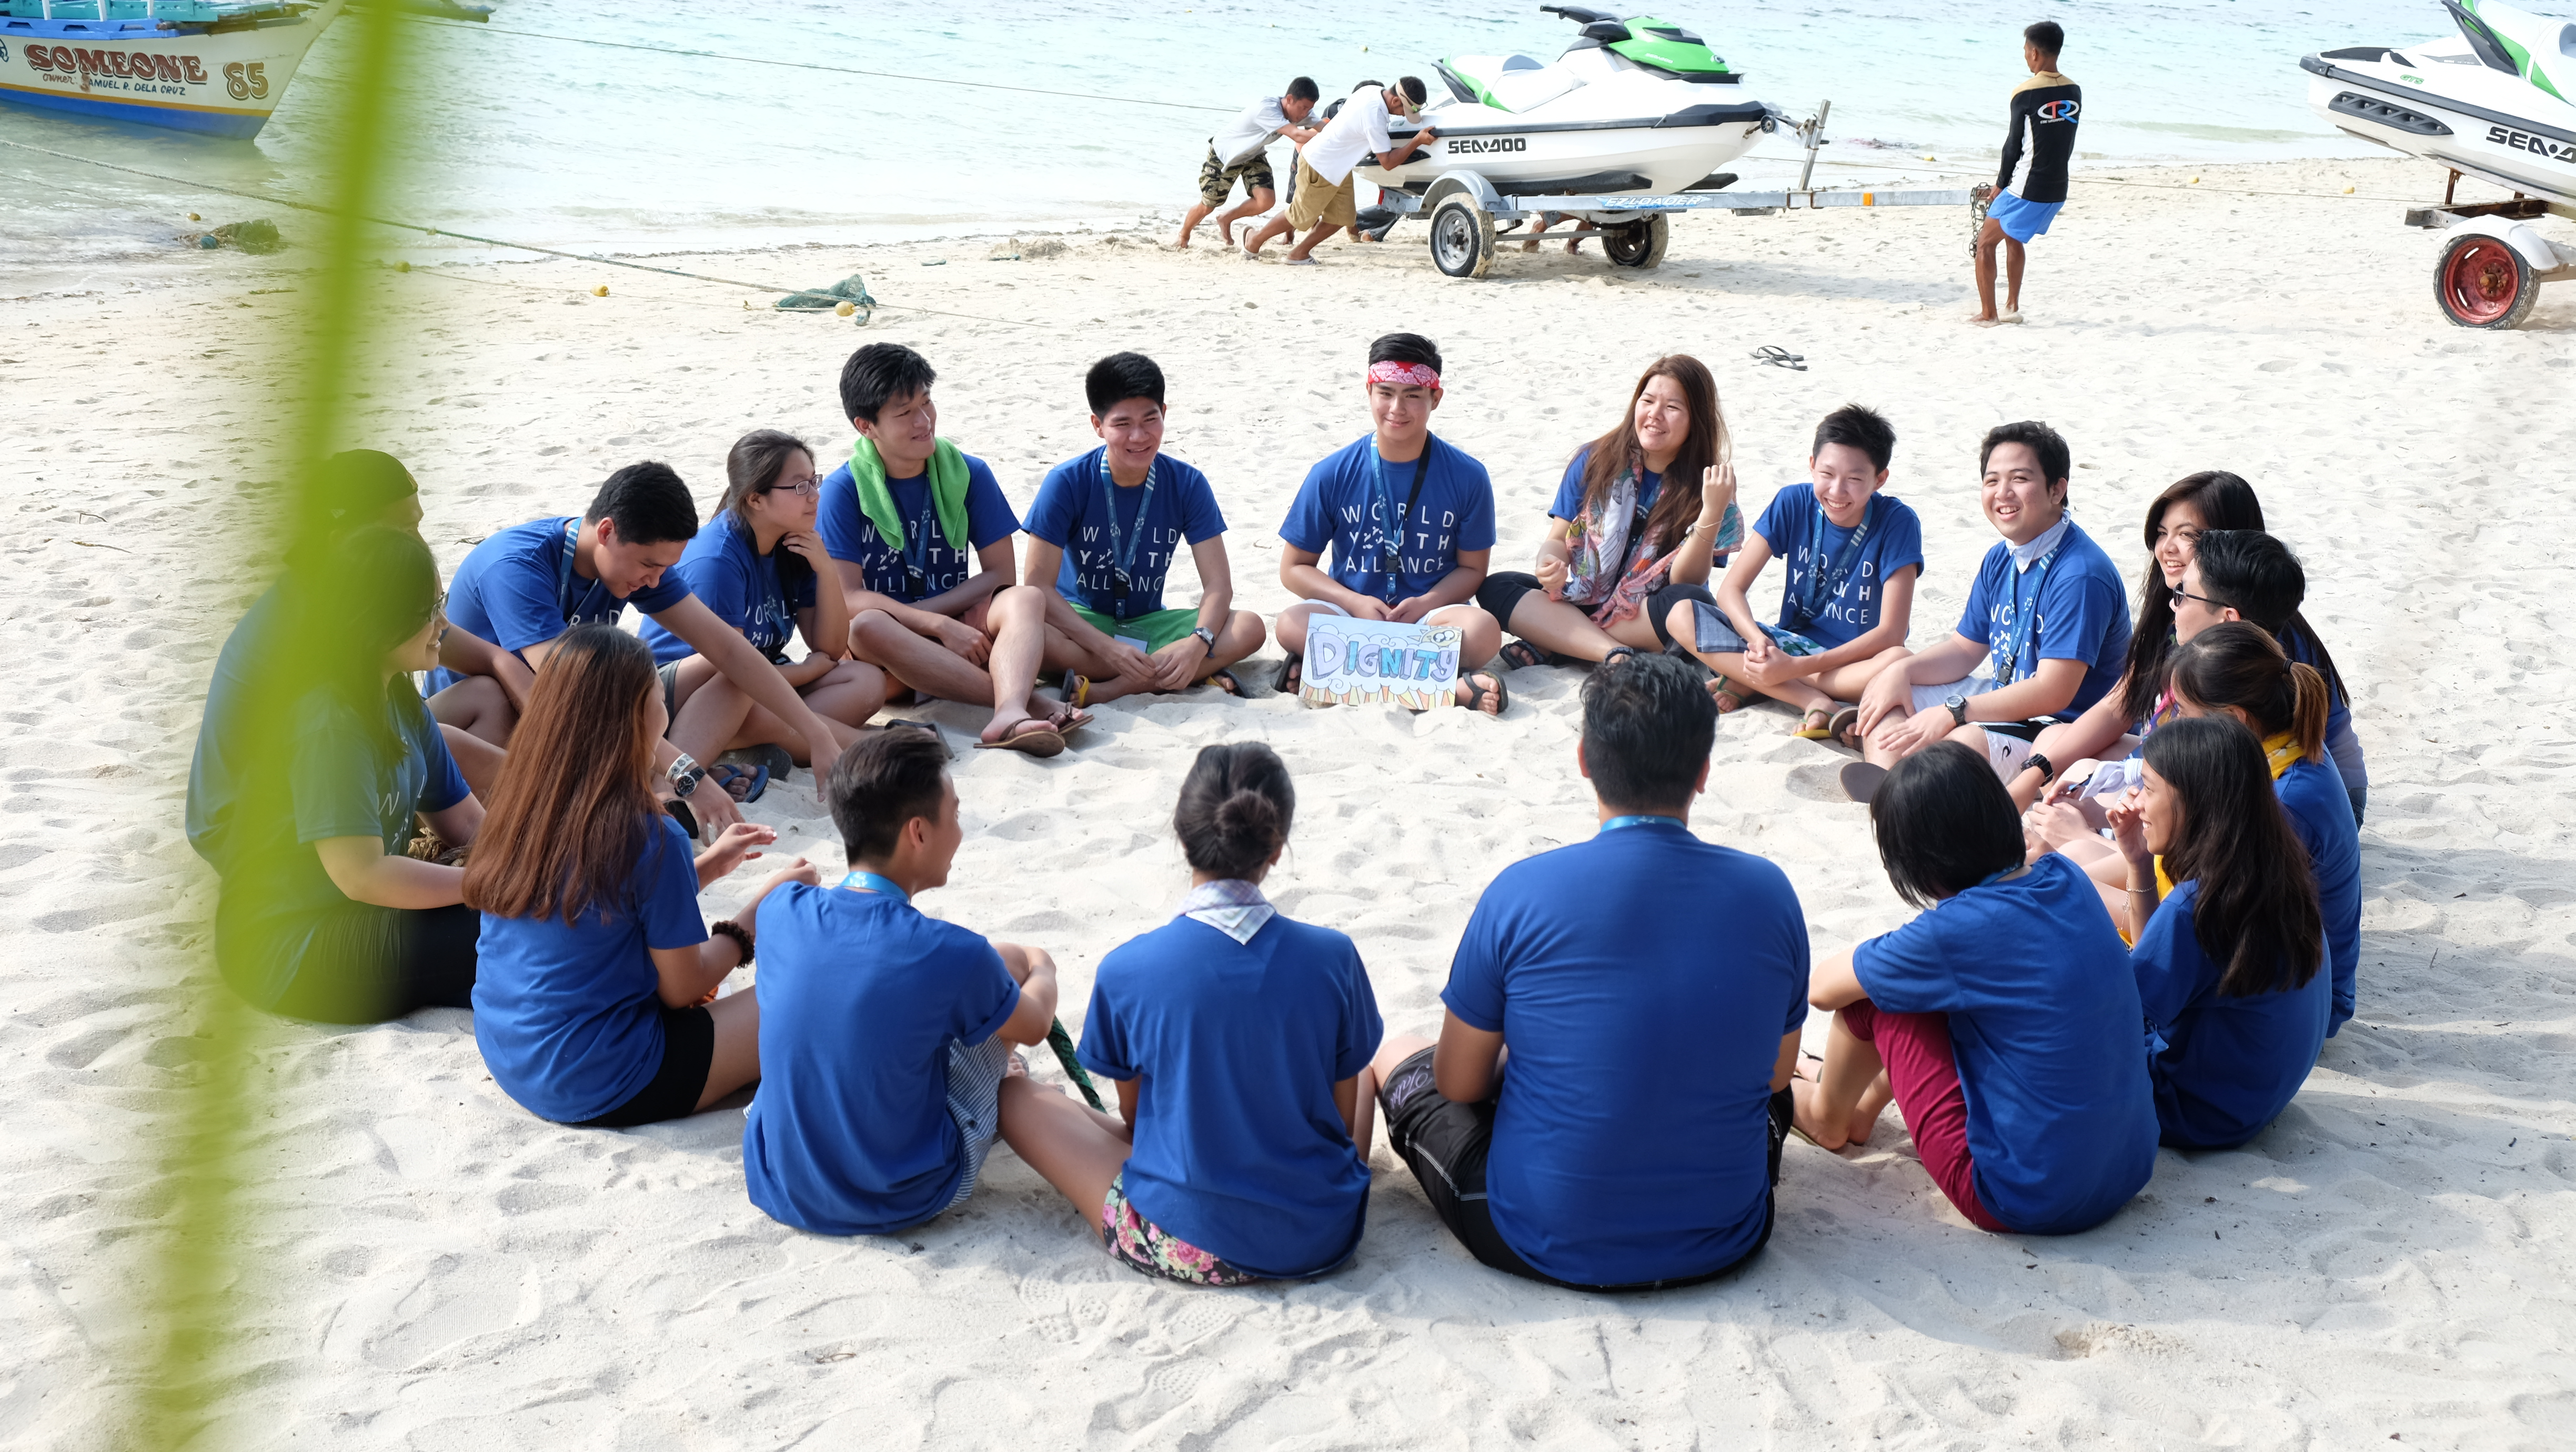 World Youth Alliance | WYAAP hosts successful Summer Camp 2015